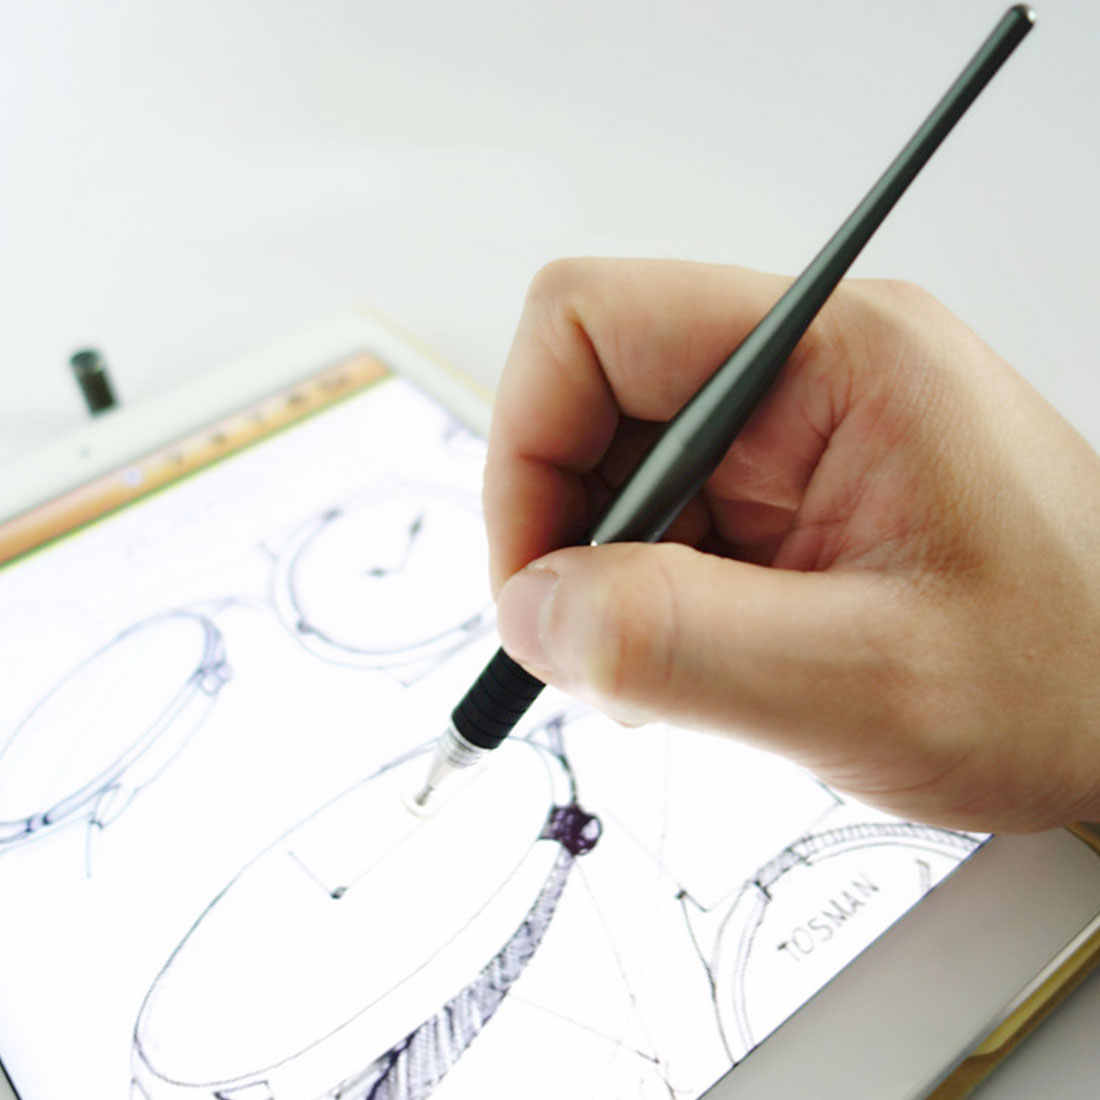 NEW Hot 2 in 1 Capacitive Stylus Pen NEW Metal Drawing Pen Touch Screen Stylus Pen For Smart Phone Tablet PC for iPhone iPad